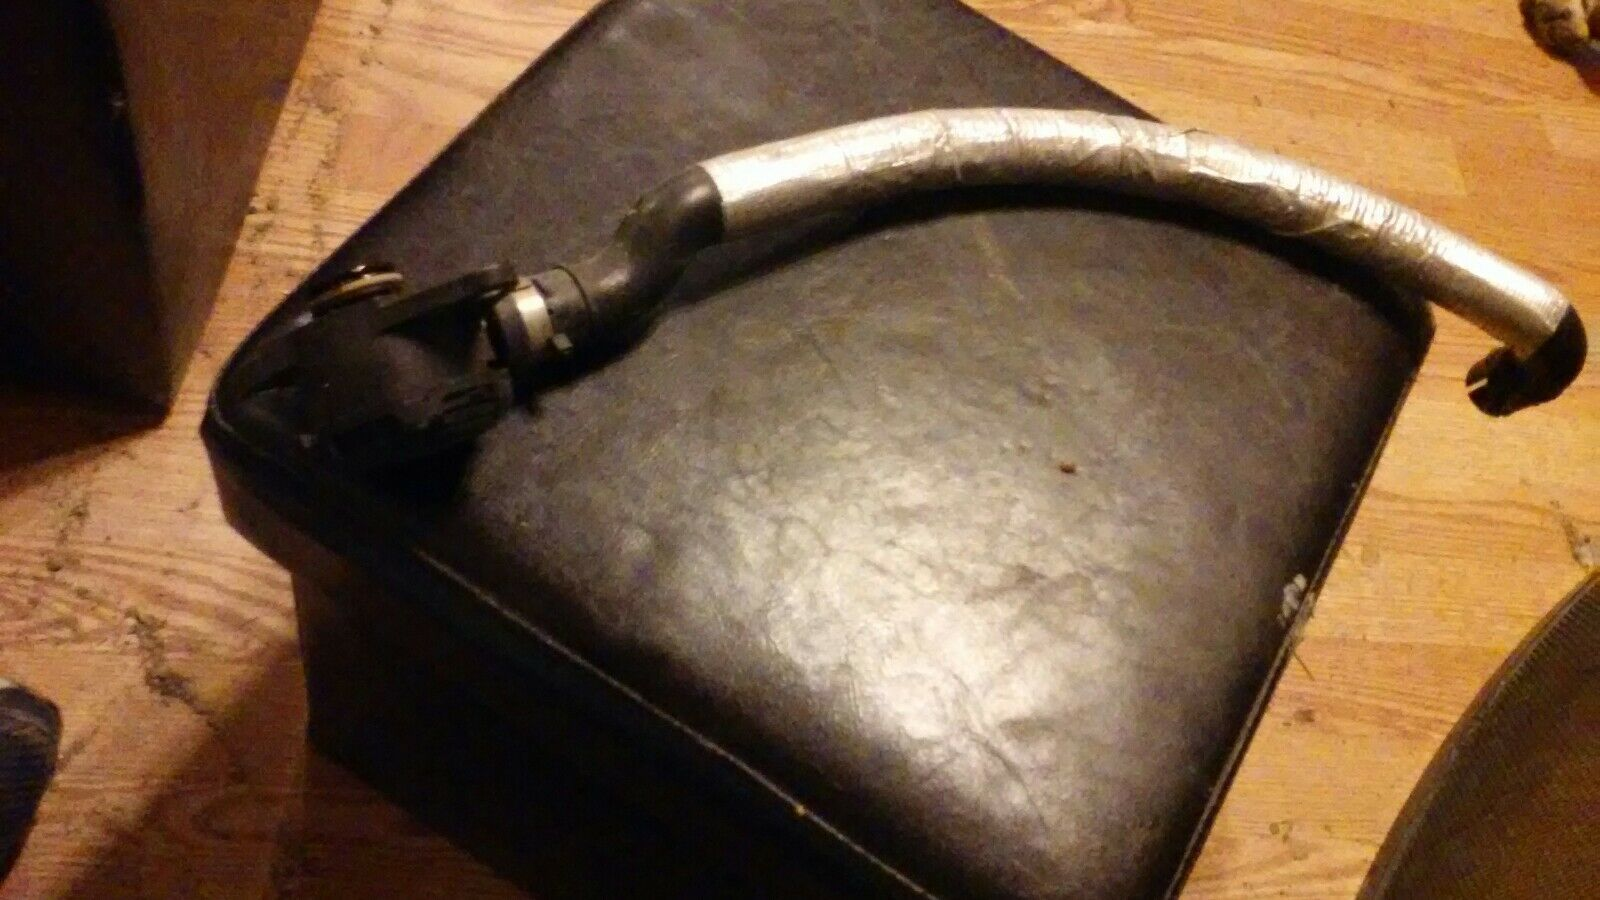 011 2011-2015 Chevy GMC 6.6 6.6L Duramax Turbo pipe